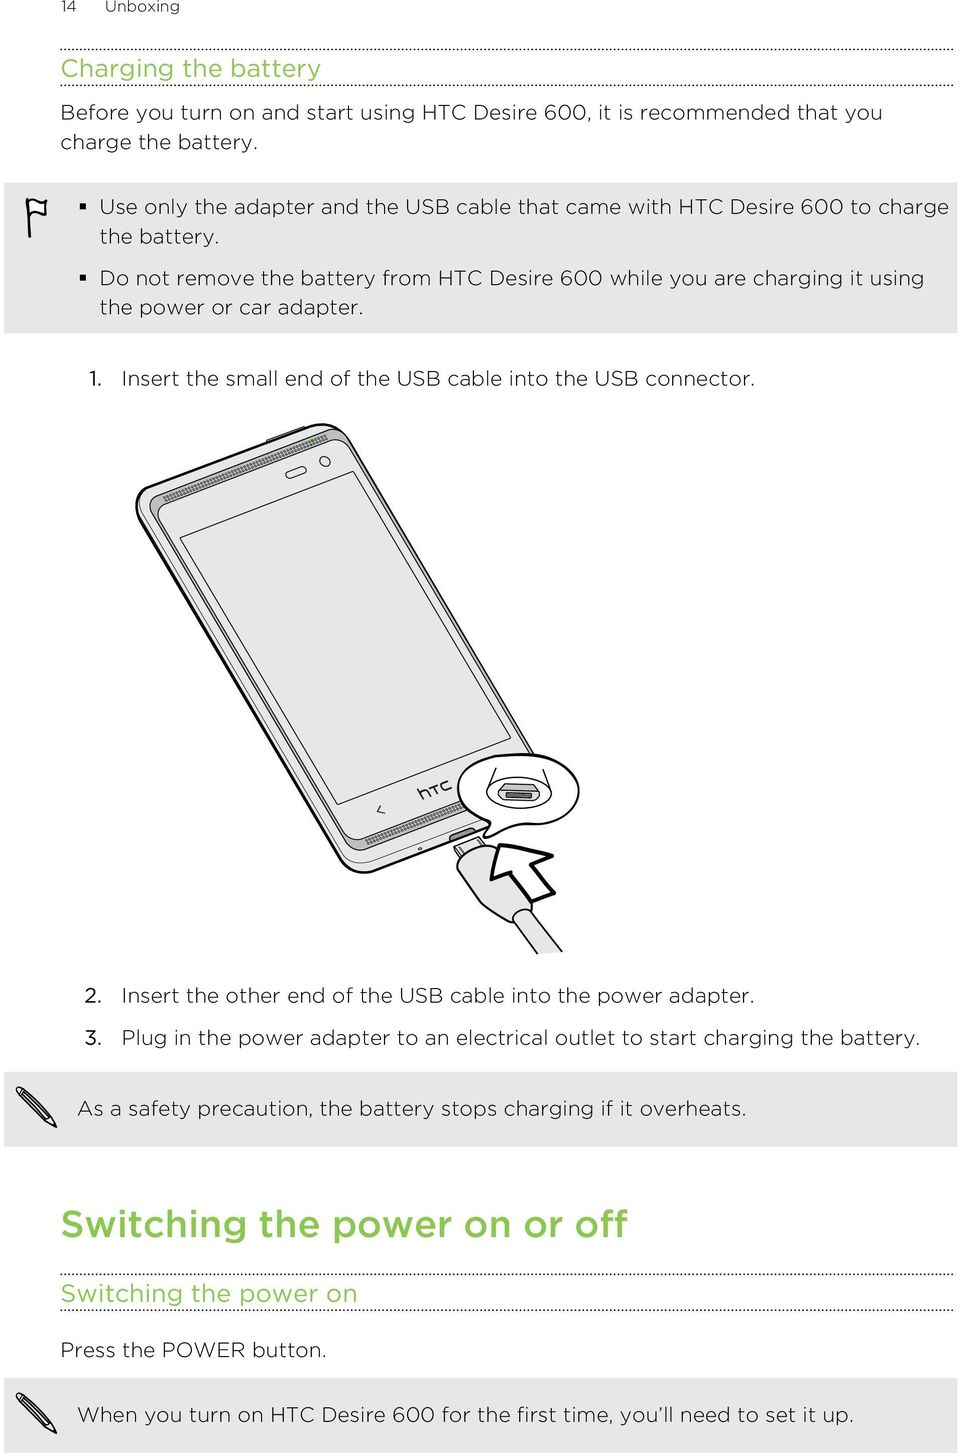 Do not remove the battery from HTC Desire 600 while you are charging it using the power or car adapter. 1. Insert the small end of the USB cable into the USB connector. 2.